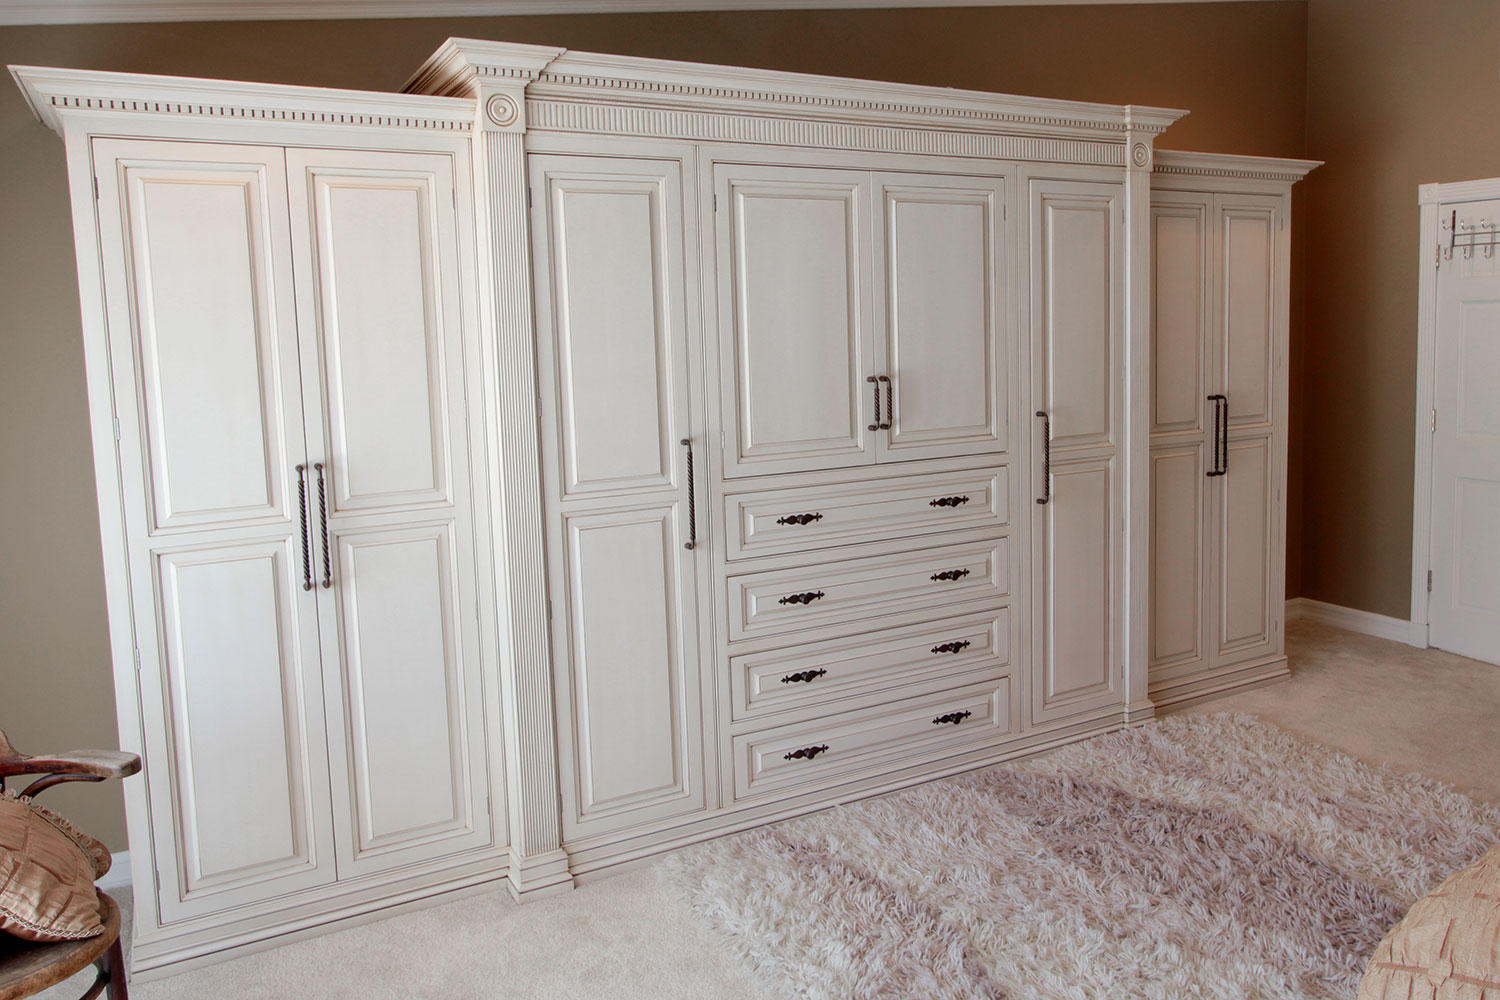 Custom Closet - Trade Custom Cabinets